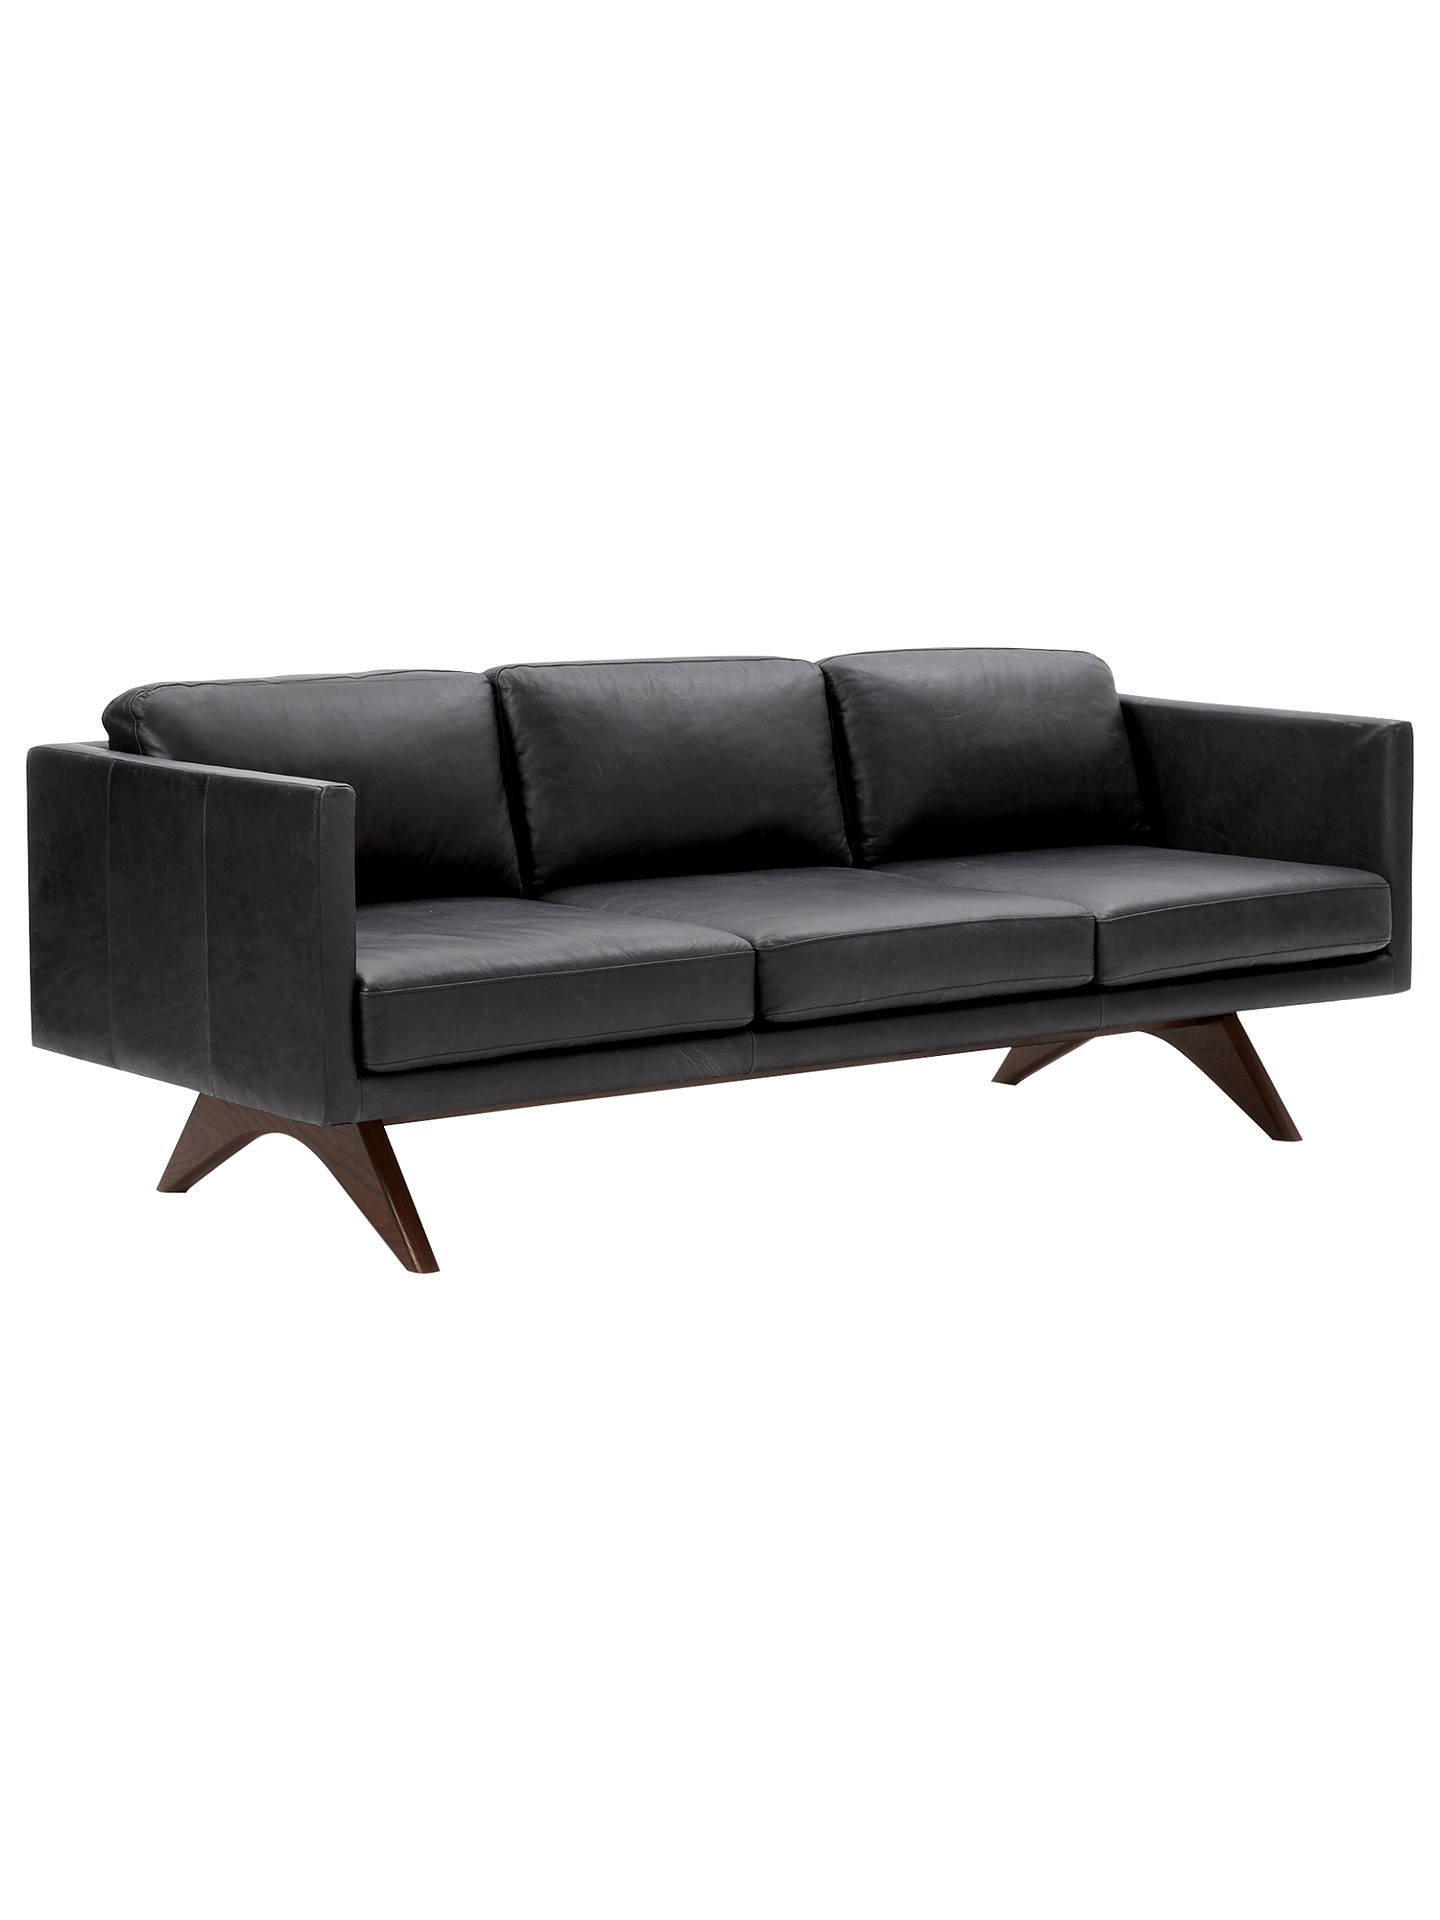 Buywest Elm Brooklyn Leather 3 Seater Sofa, Liquorice Online At  Johnlewis.com ...